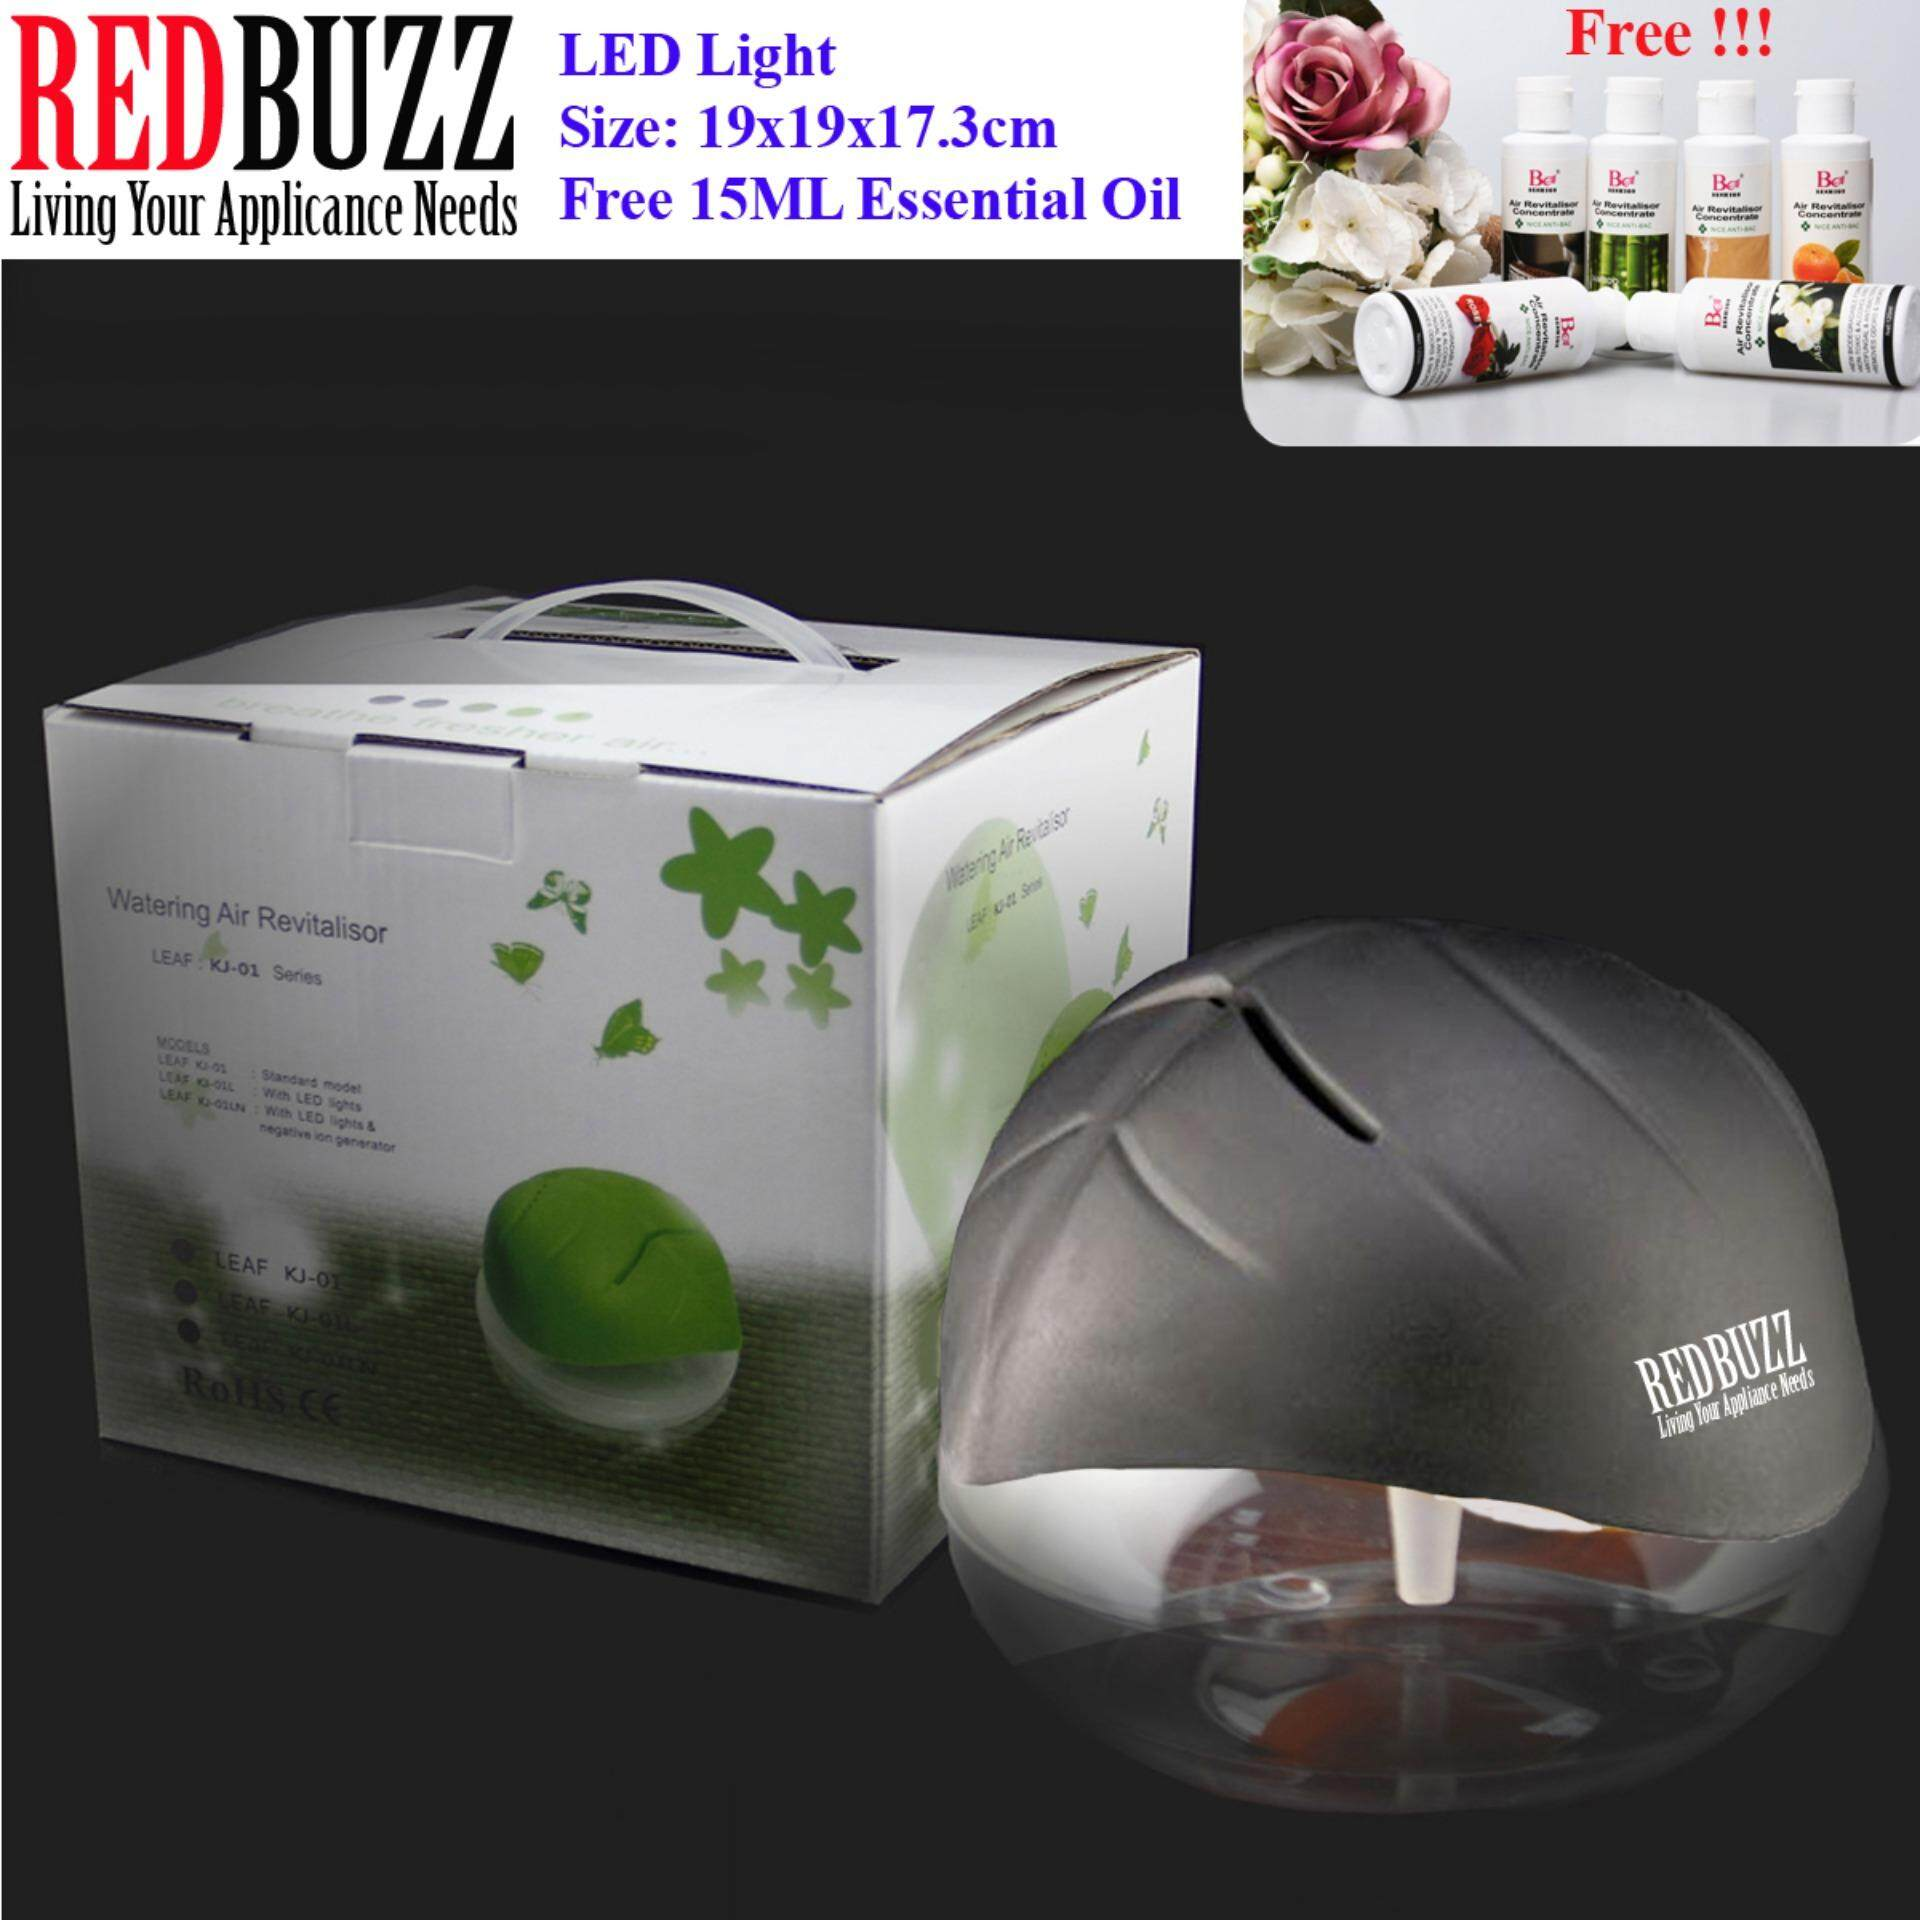 REDBUZZ Watering Air Revitalisor Fresh Air Purifier Aroma Diffuser with LED light + Free 15ML Essential Oil (Black Color)